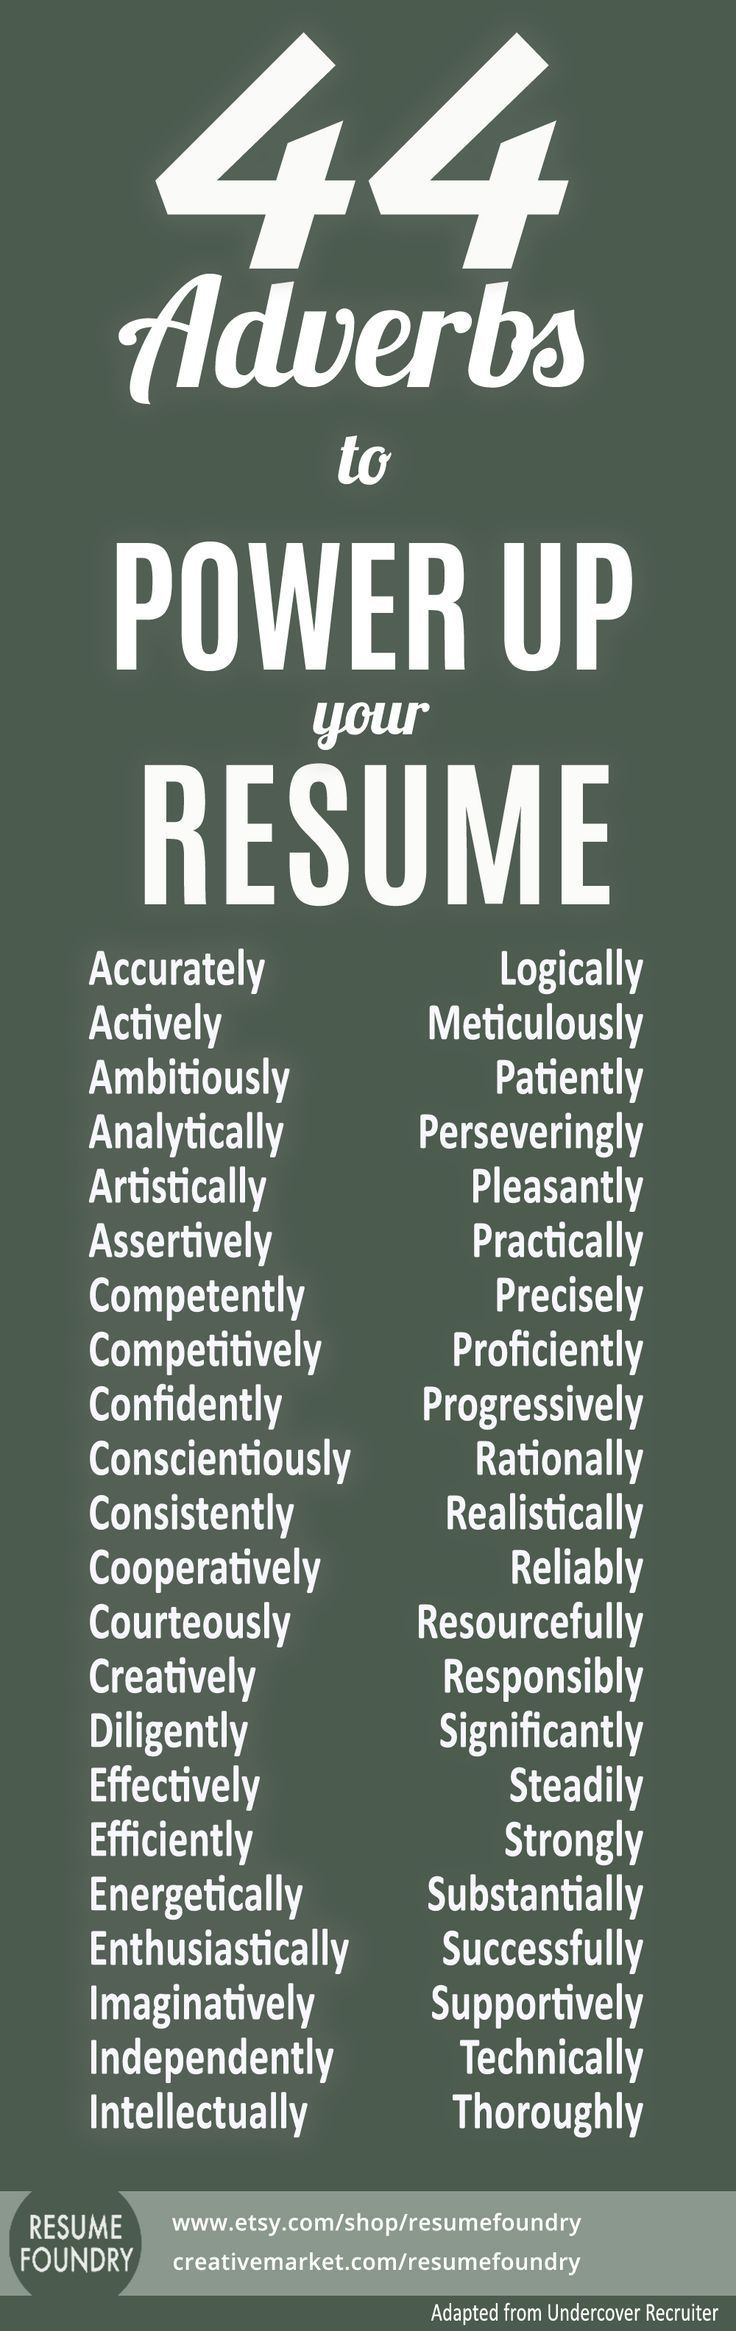 medical billing resumes%0A Resume tips  resume skill words  resume verbs  resume experience